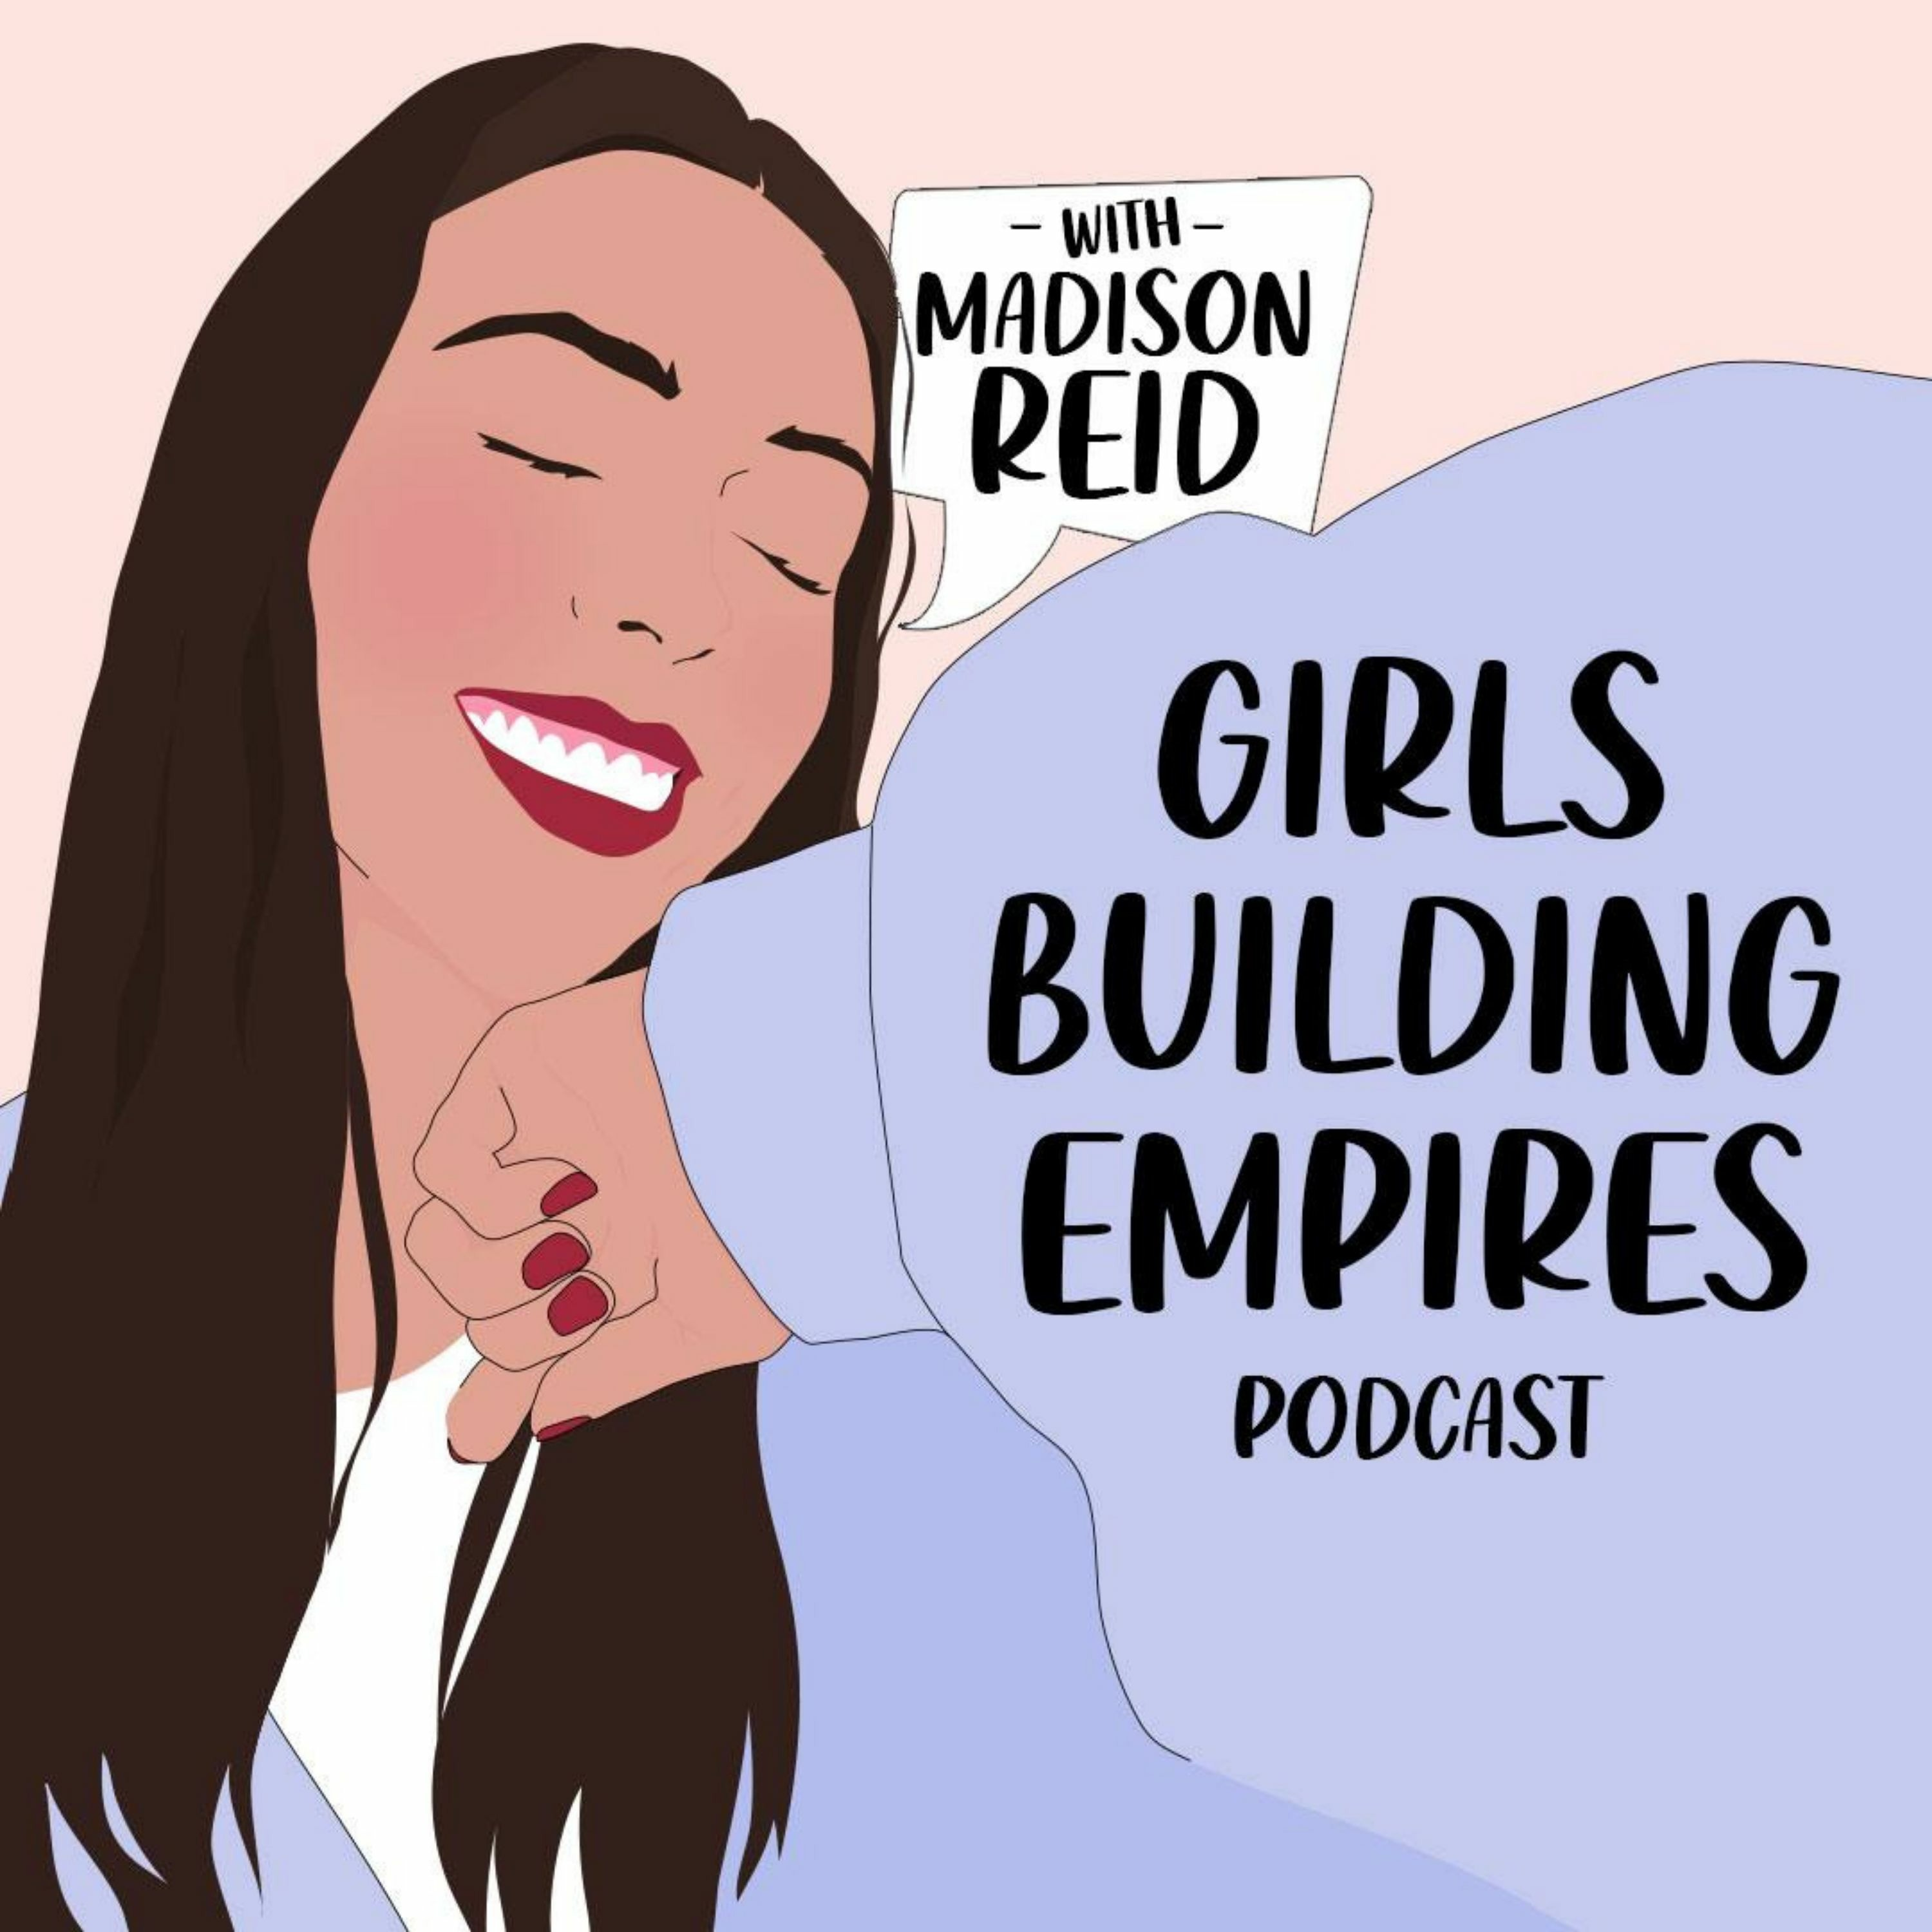 Girls Building Empires podcast cover